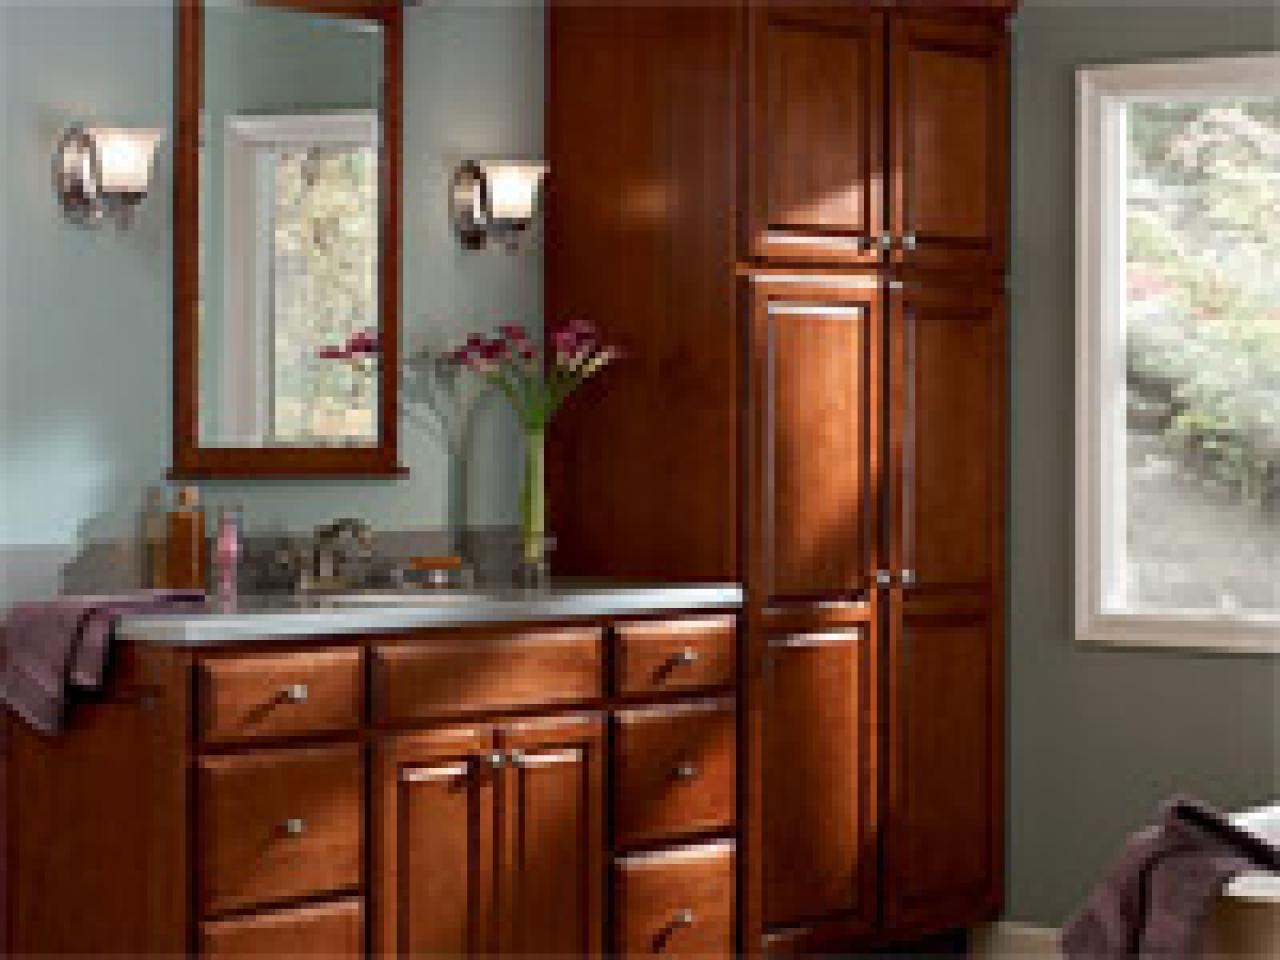 Bathroom Cabinets Designs Photos : Guide to selecting bathroom cabinets hgtv